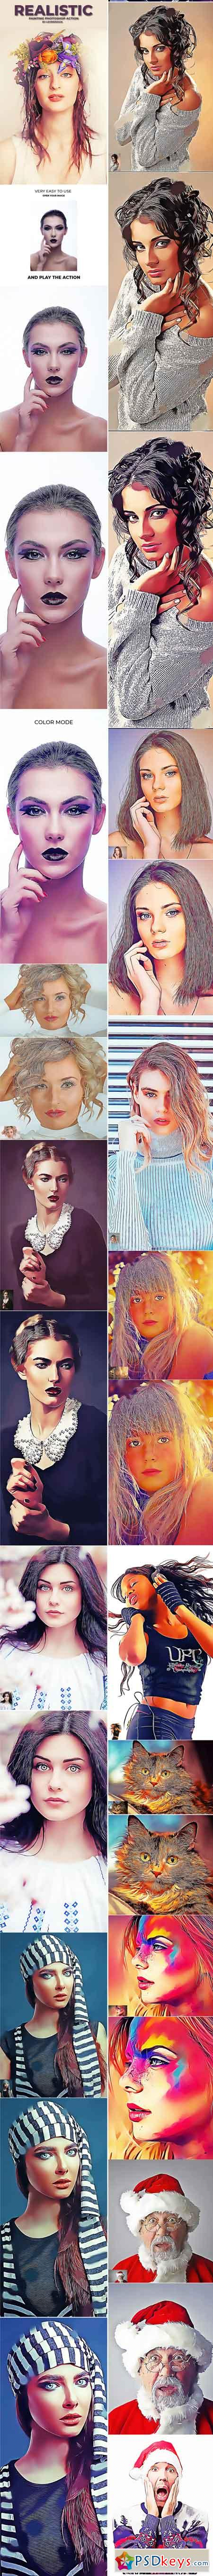 Realistic Painting Photoshop Action 22049785